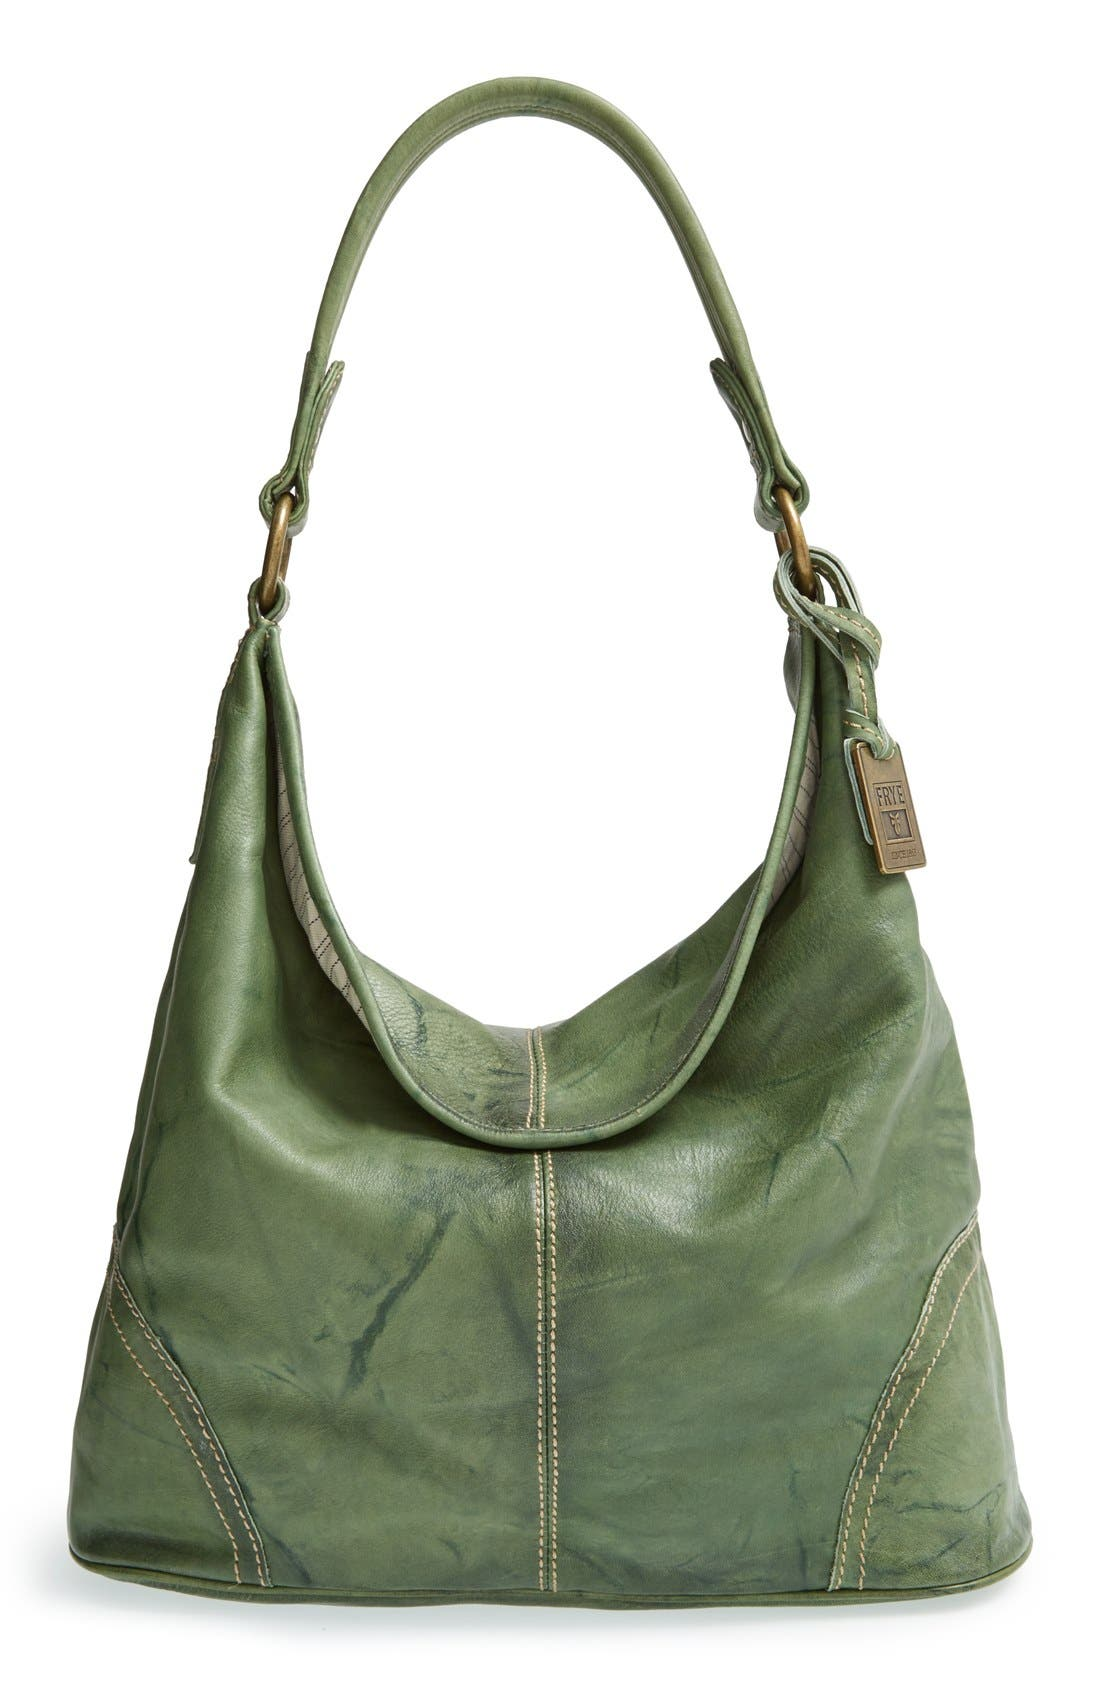 Alternate Image 1 Selected - Frye 'Campus' Leather Hobo